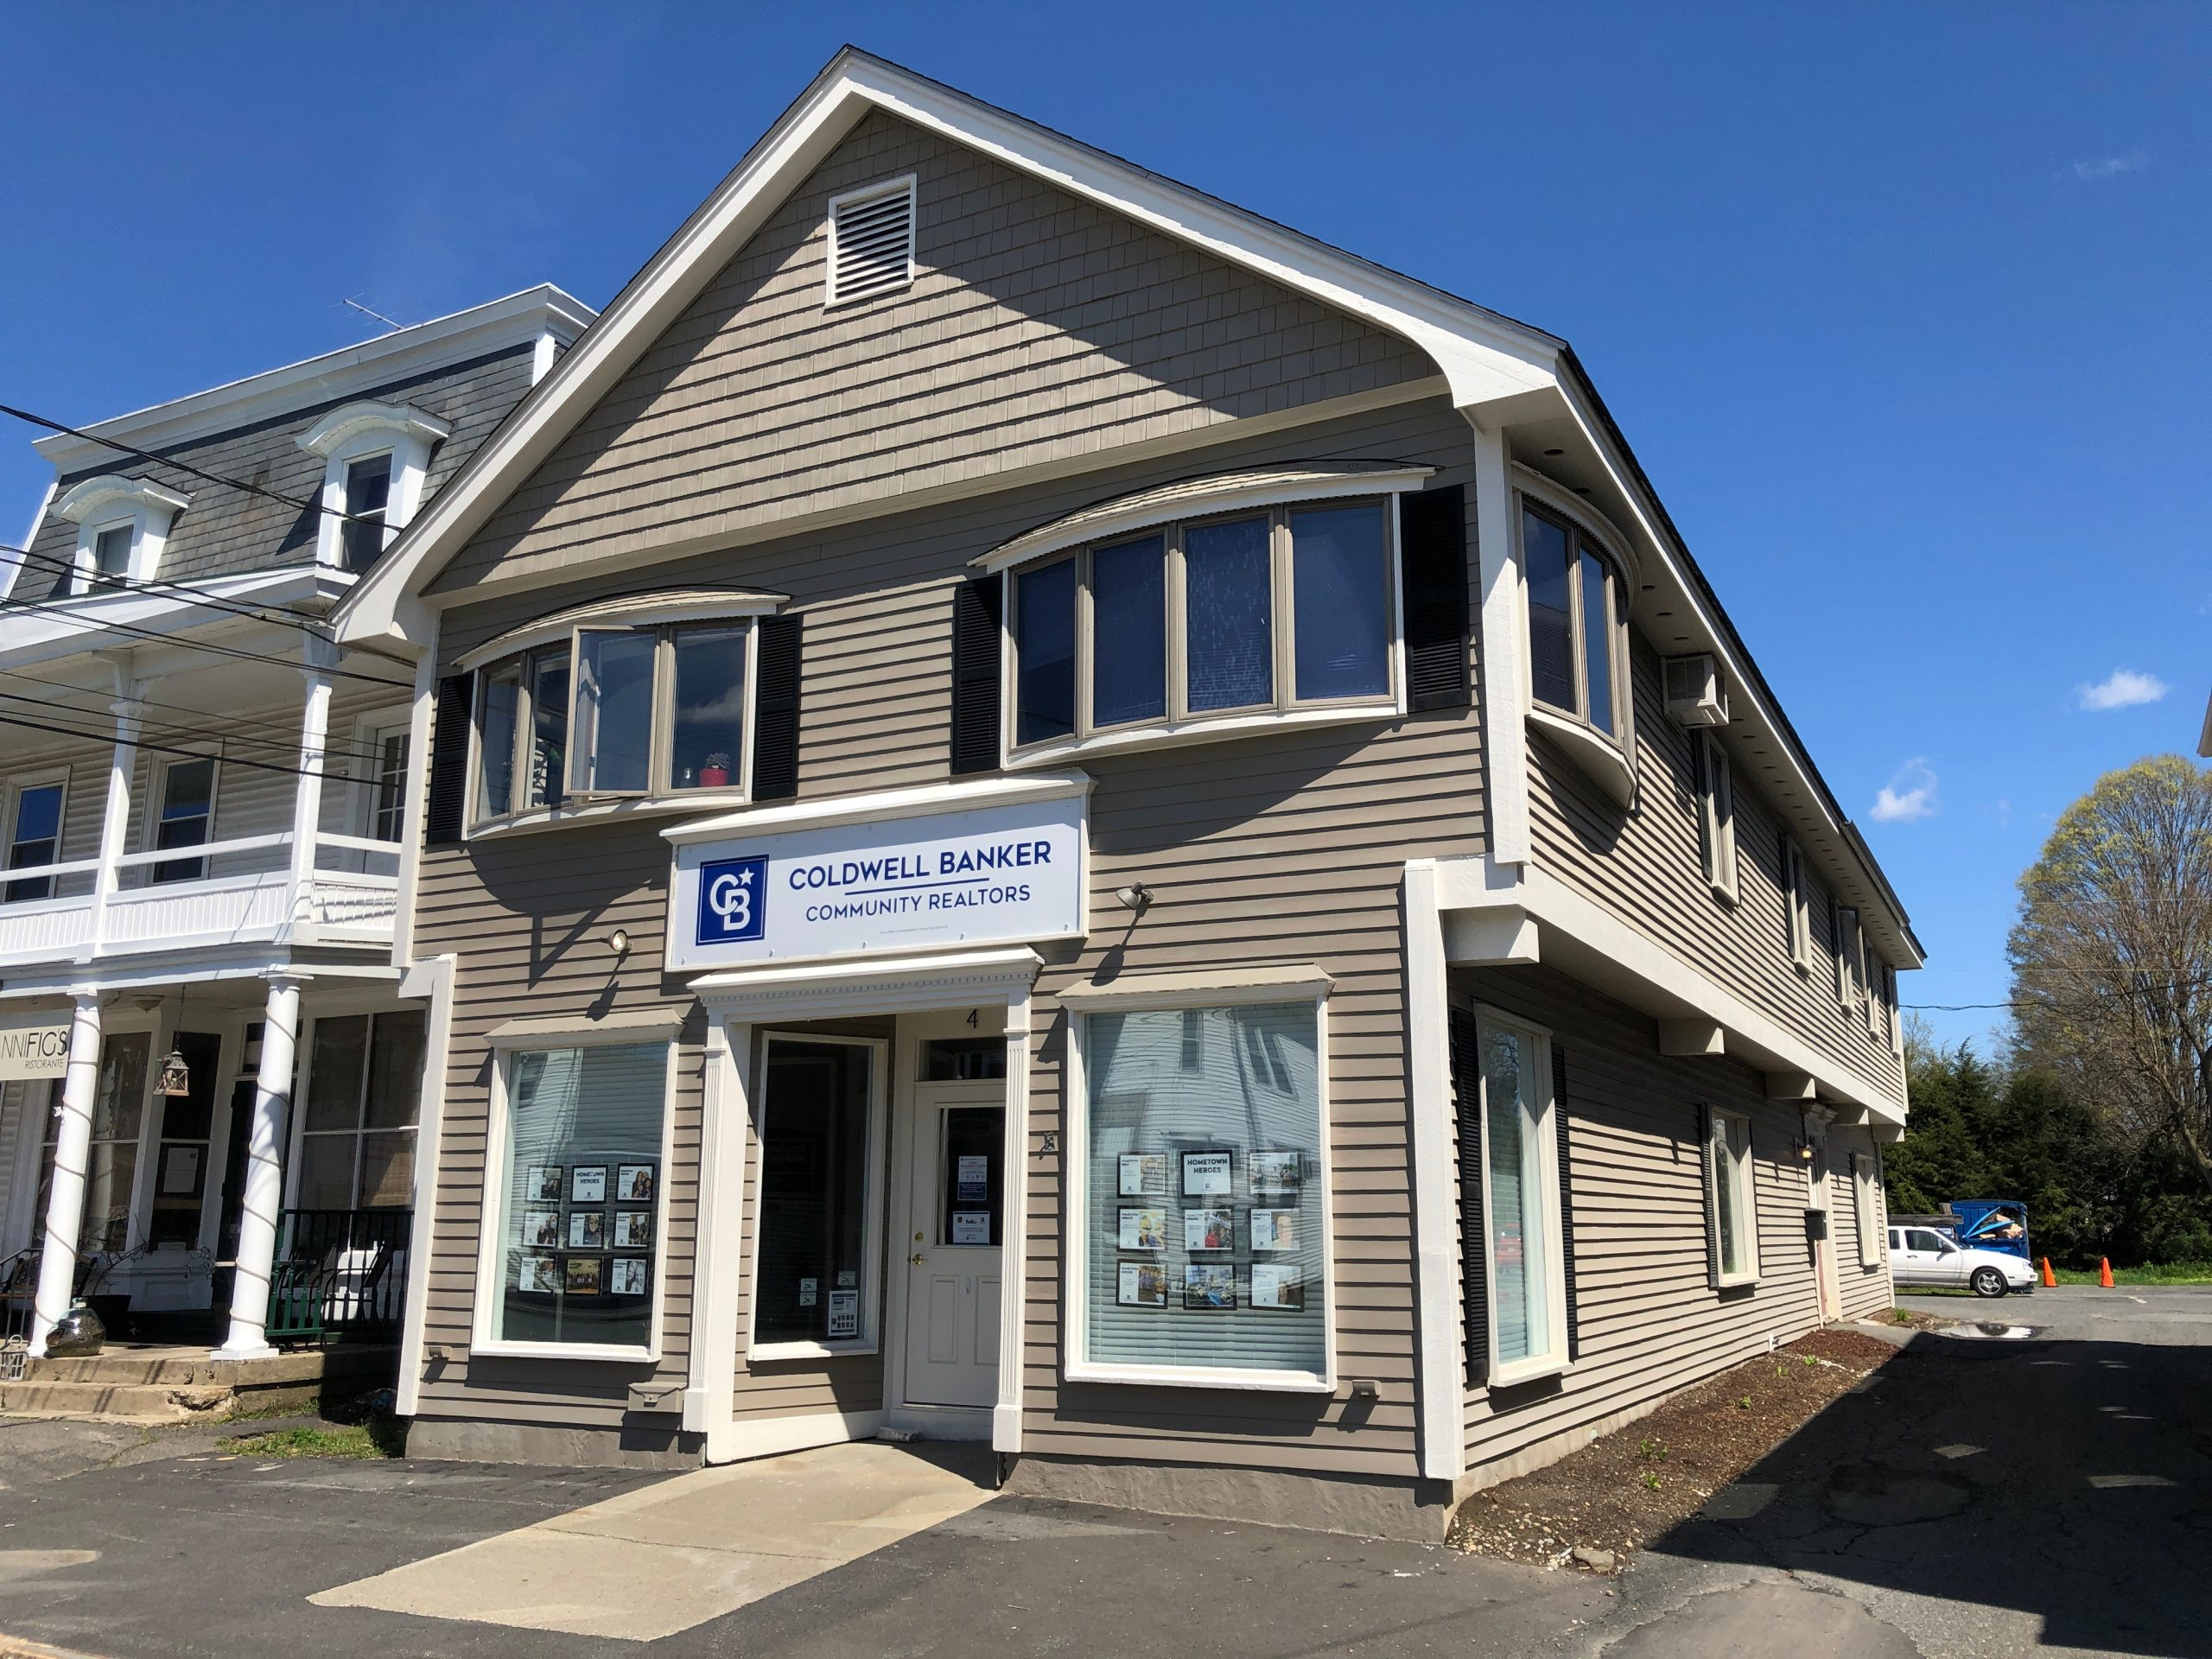 Coldwell Banker Community Realtors South Deerfield, MA